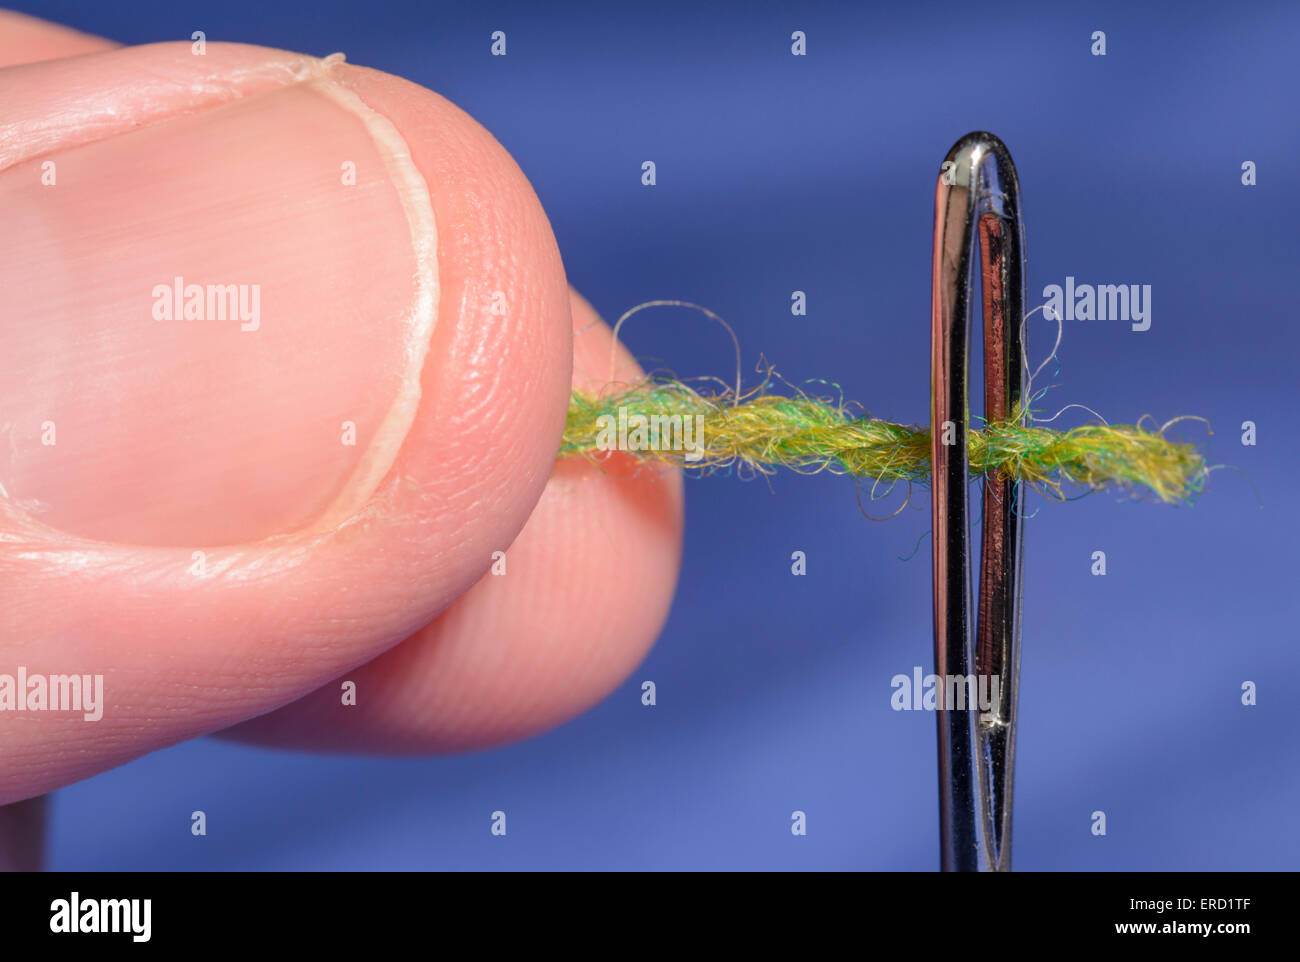 Threading a needle. Closeup of a man's fingers threading through the eye of a darning needle. - Stock Image